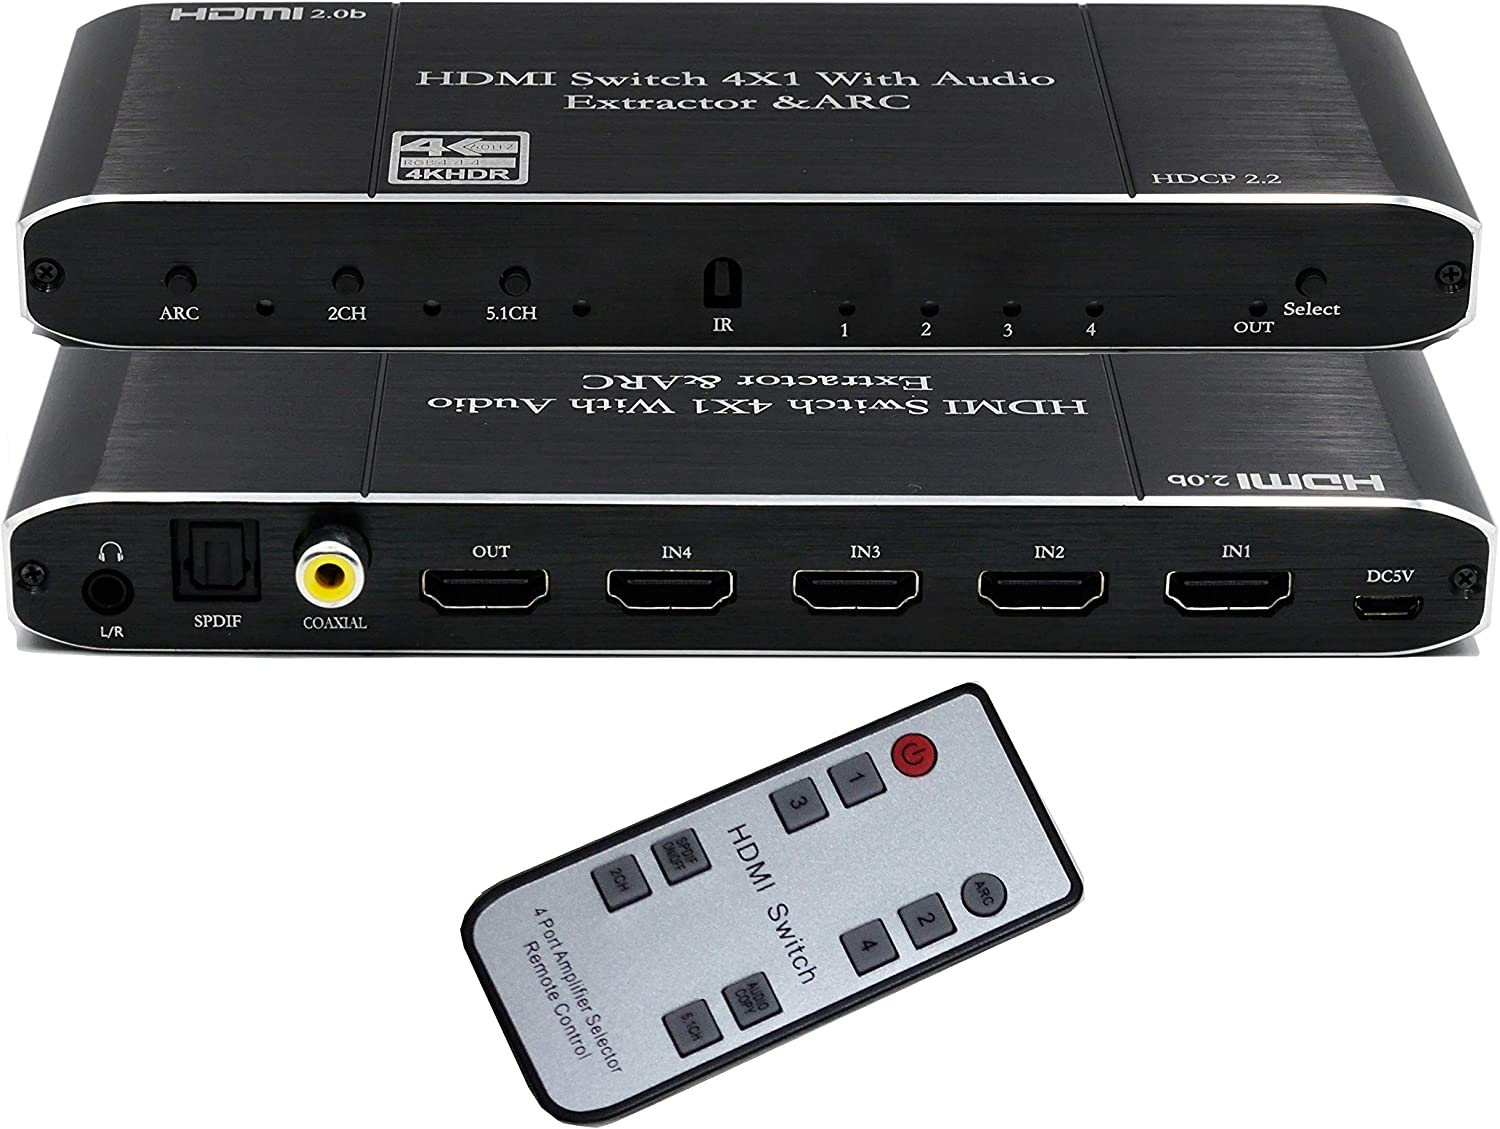 HDMI Switch 4x1 hdmi Audio Extractor 4K@60Hz with Optical SPDIF/Coaxial/ 3.5mm L/R Audio Extractor Support HDMI 2.0b HDCP 2.2 ARC Function